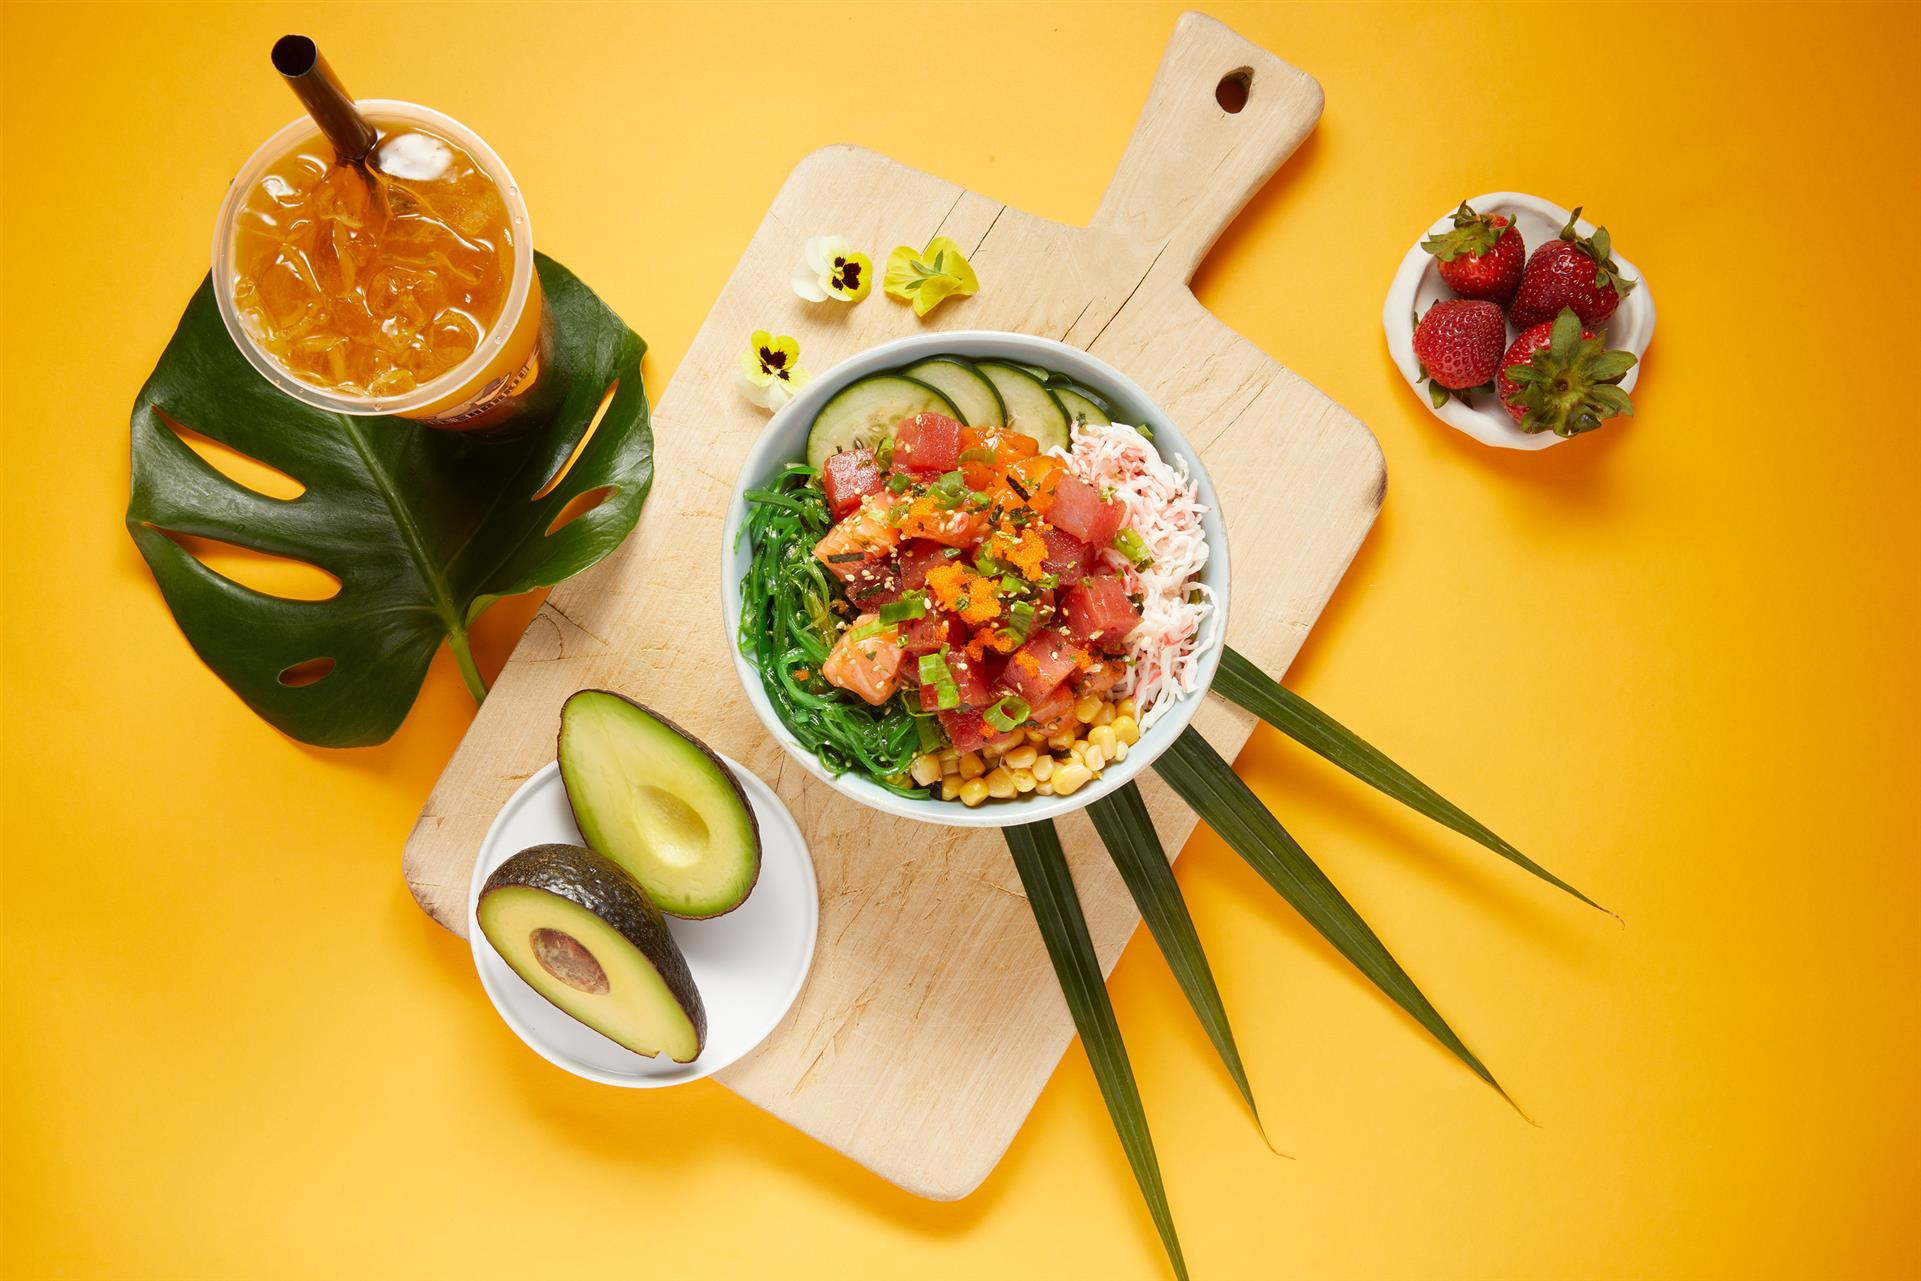 poke bowl on a tray with avocado on the side and a drink